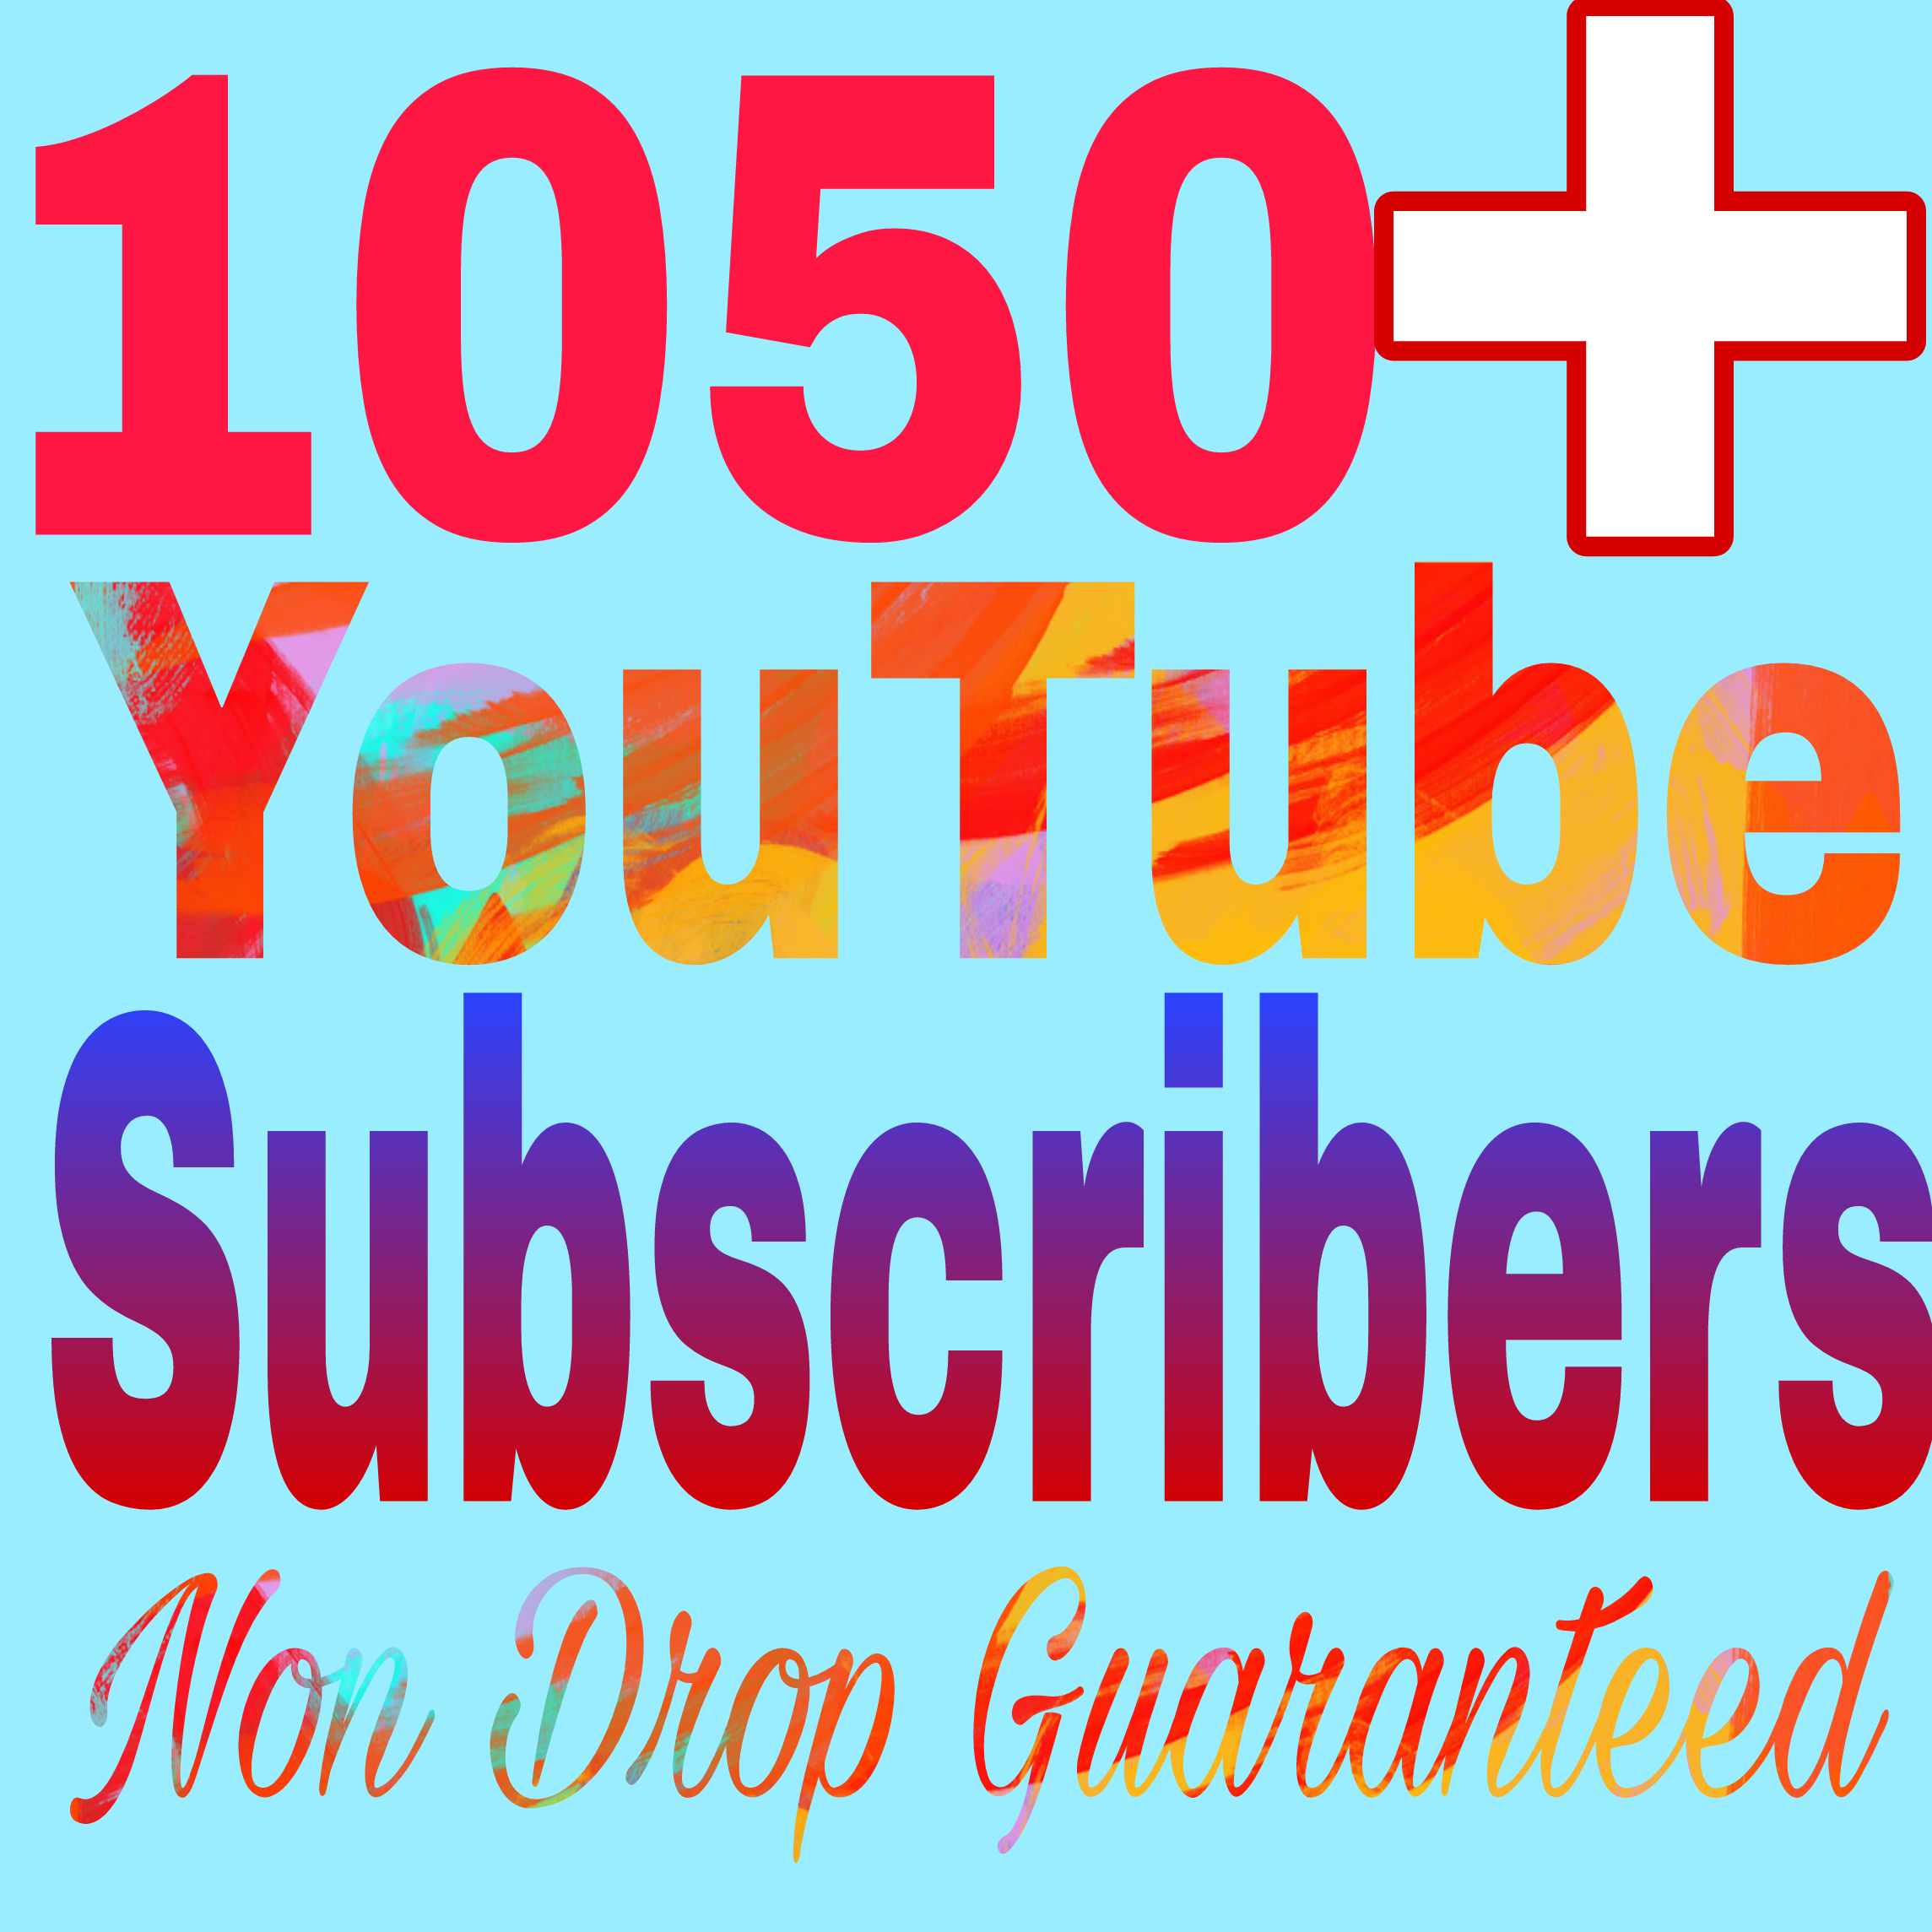 Special offer 1050+ Non Drop chann el subs+criber very fast delivery within 2-8hours